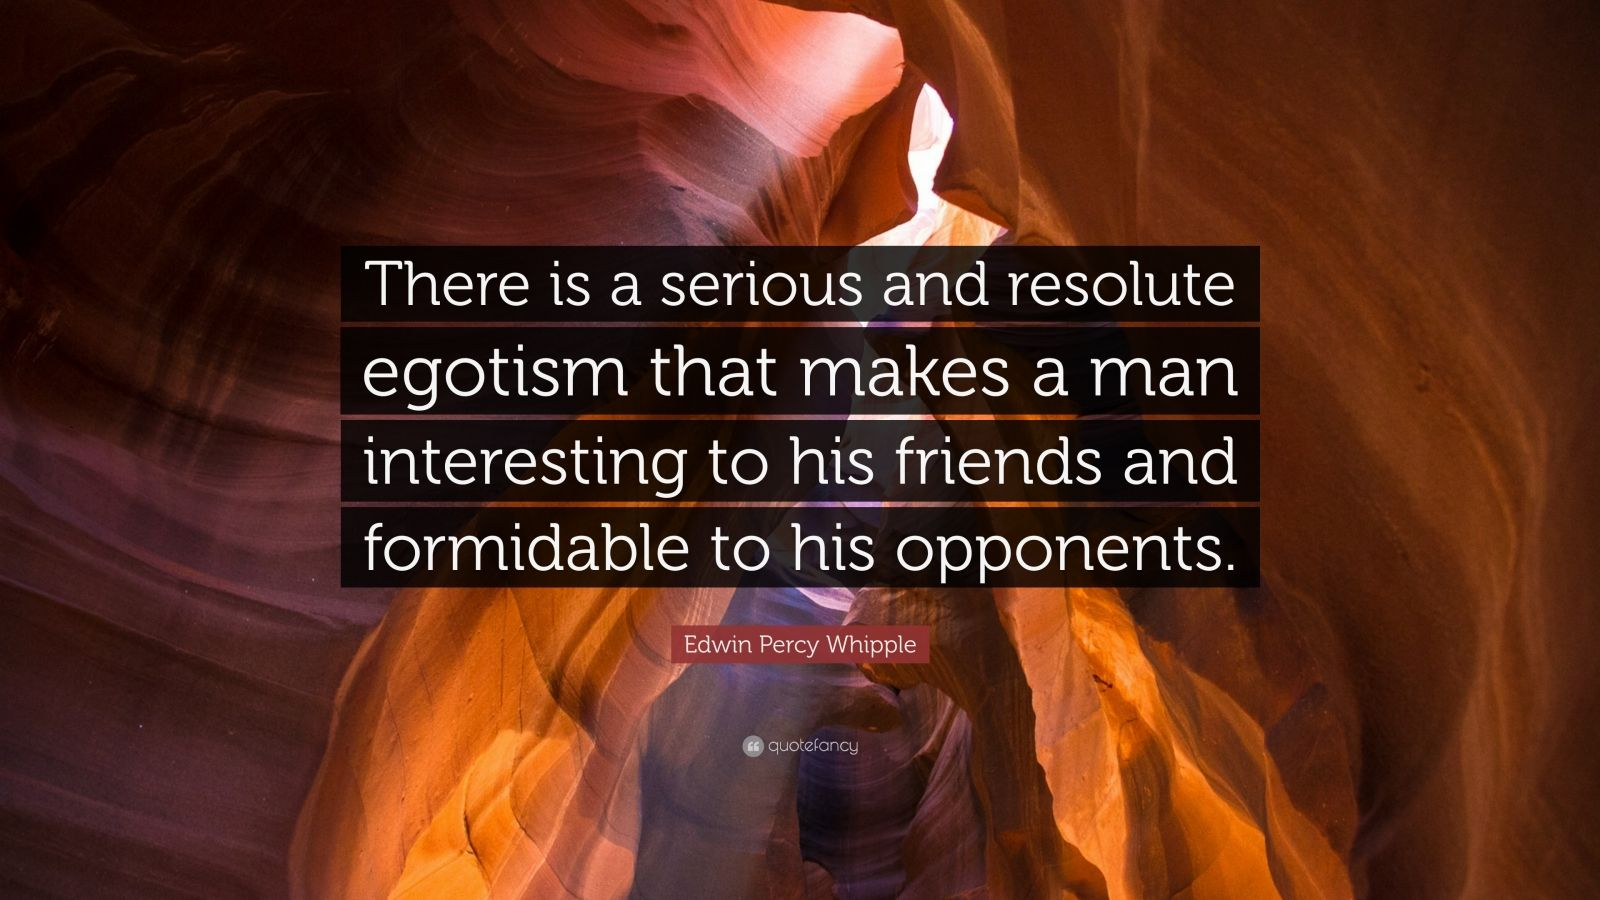 """Edwin Percy Whipple Quote: """"There is a serious and resolute egotism that makes a man interesting to his friends and formidable to his opponents."""""""